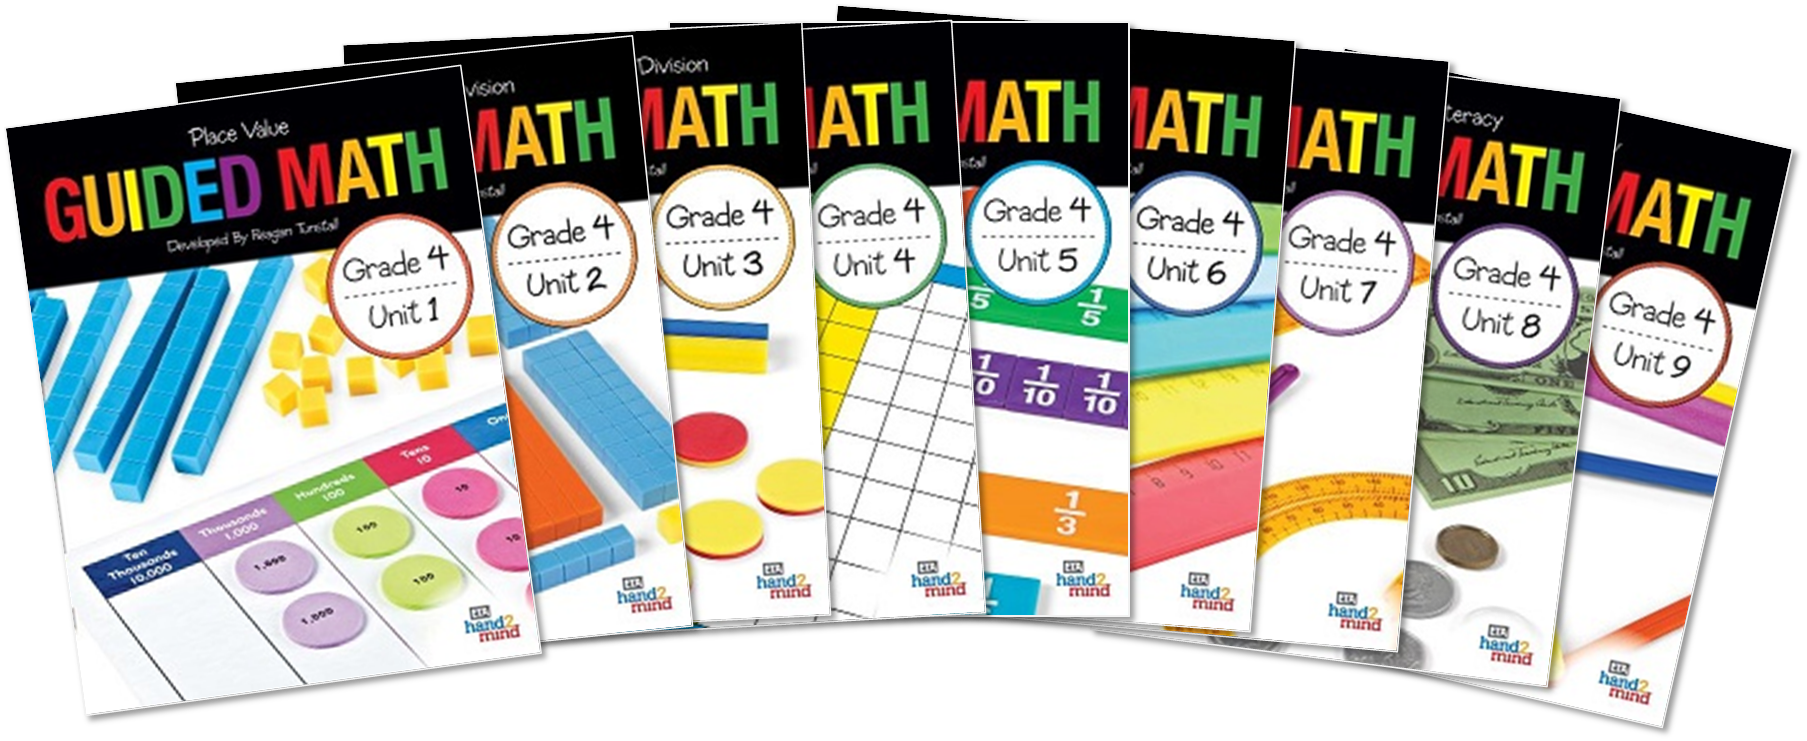 guided math curriculum